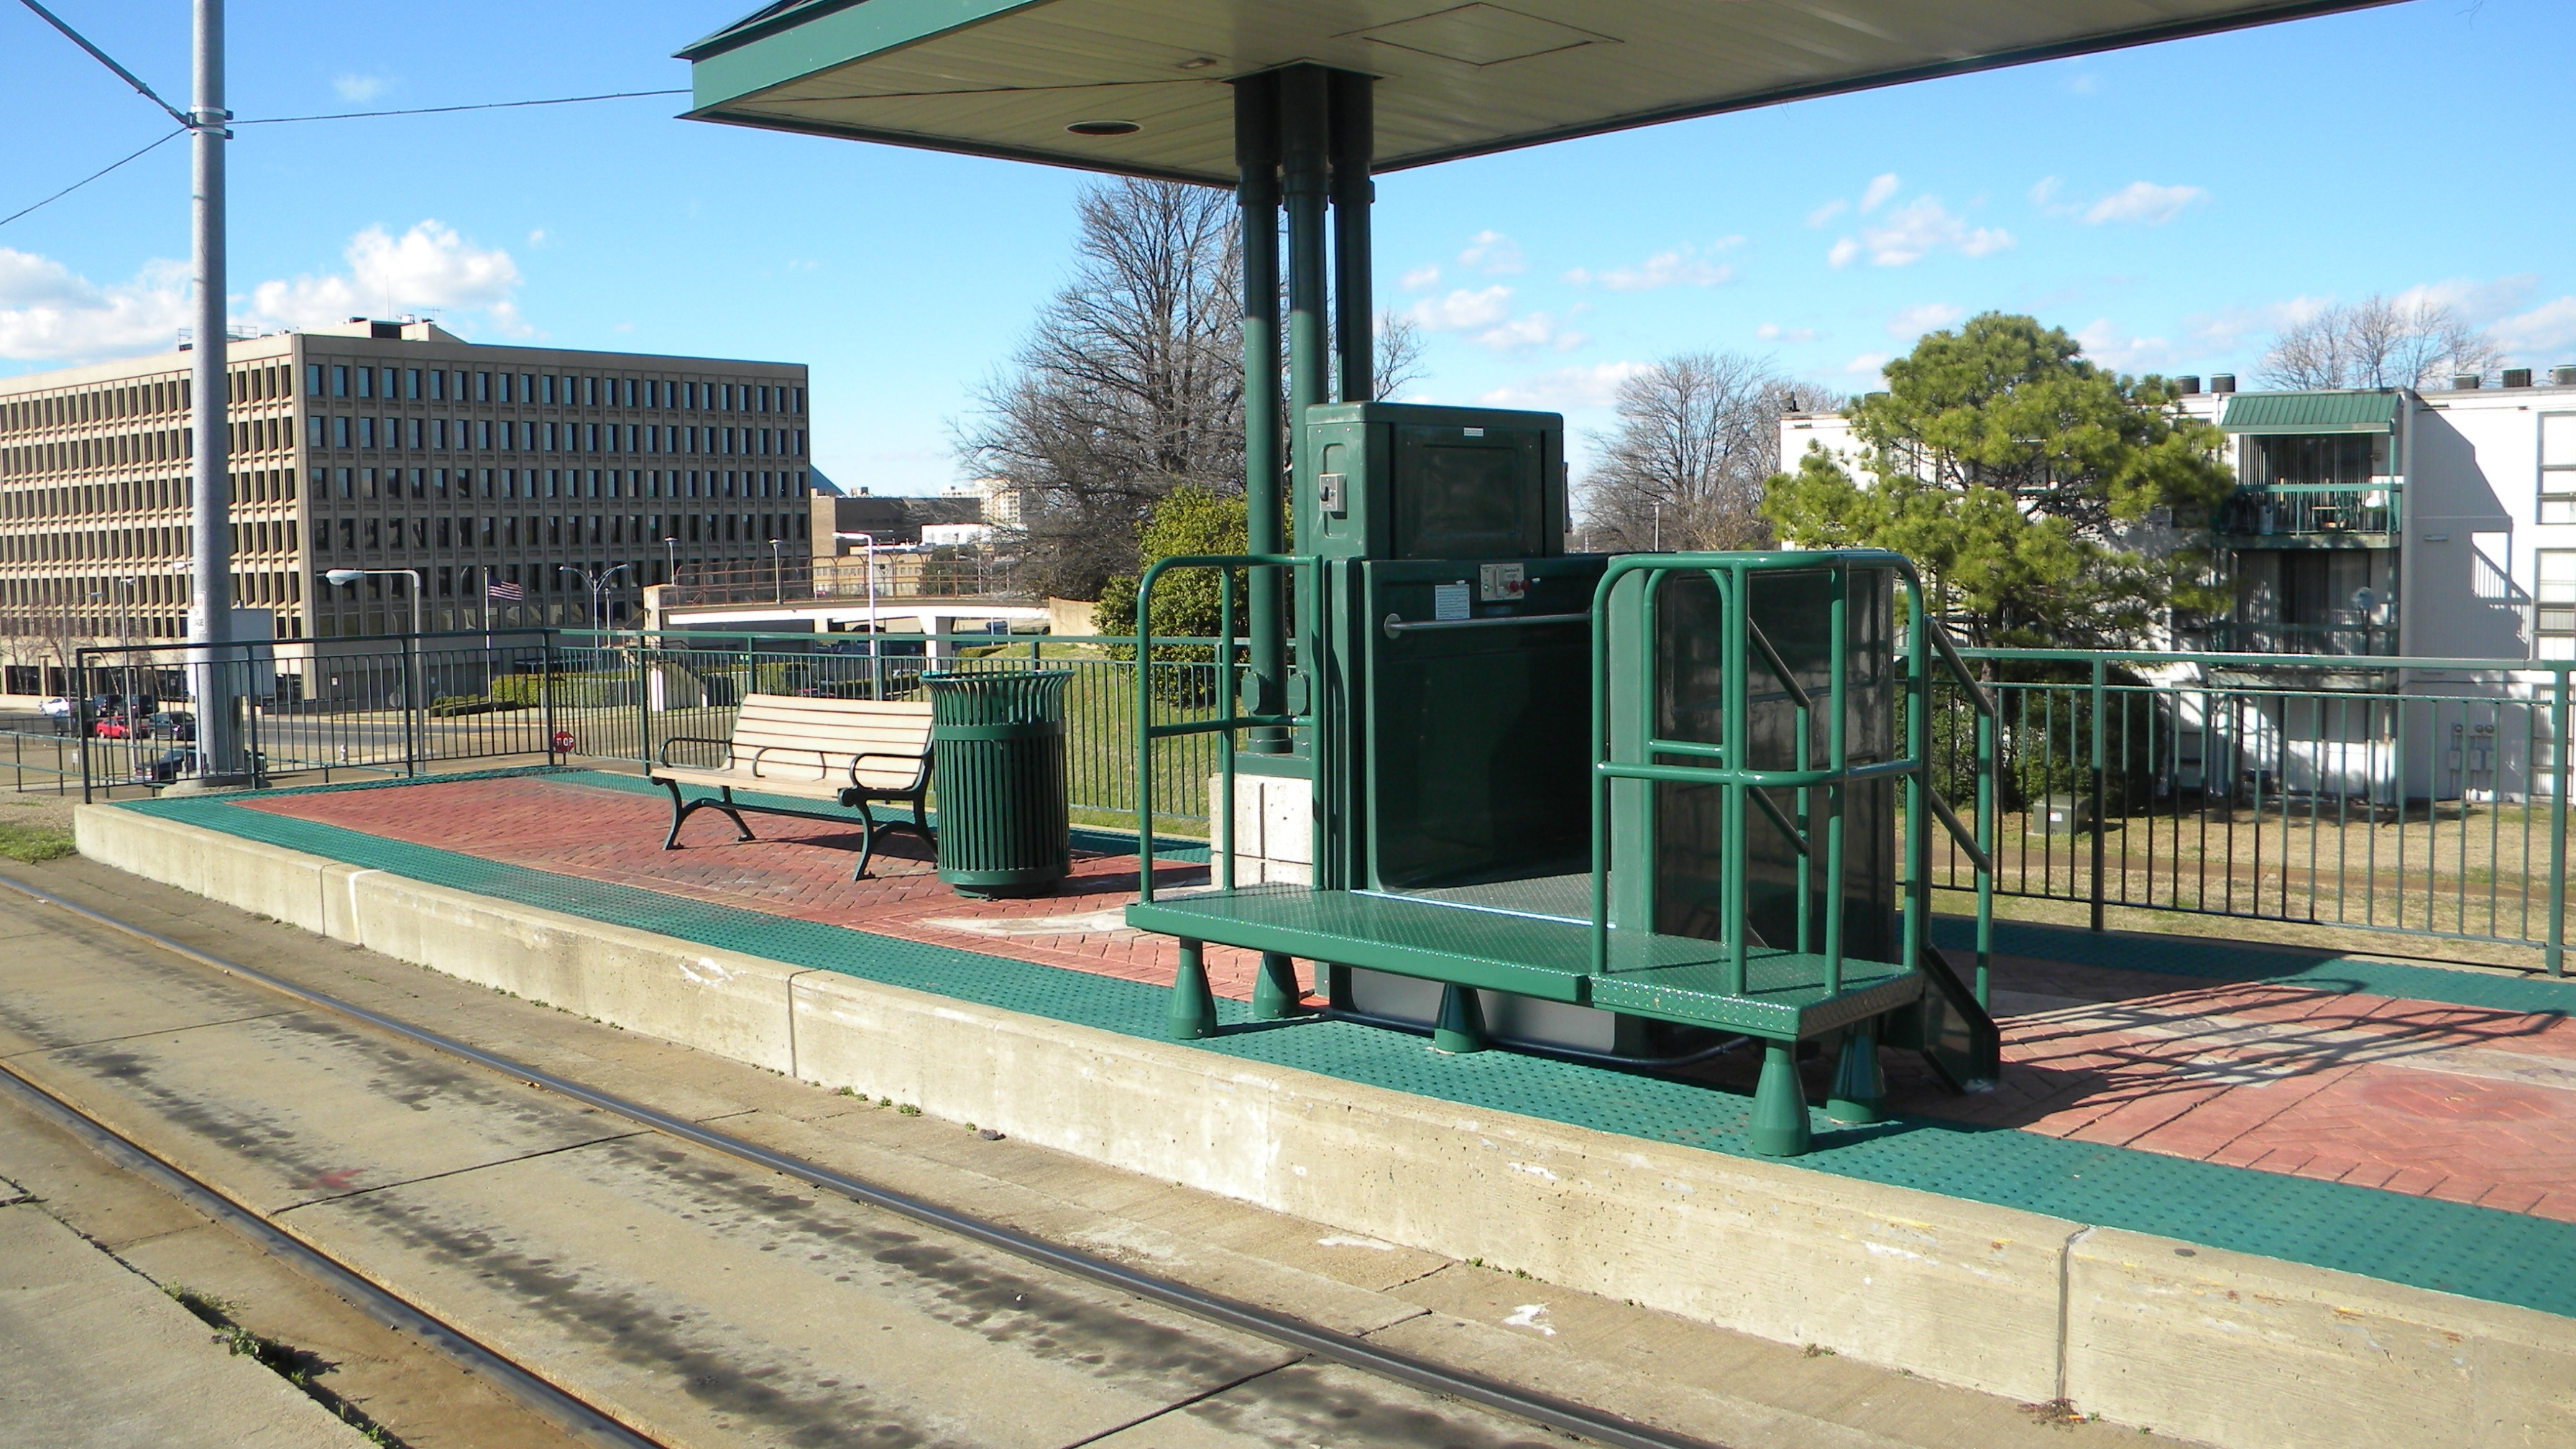 MATA upgrades trolley station lifts to better serve riders